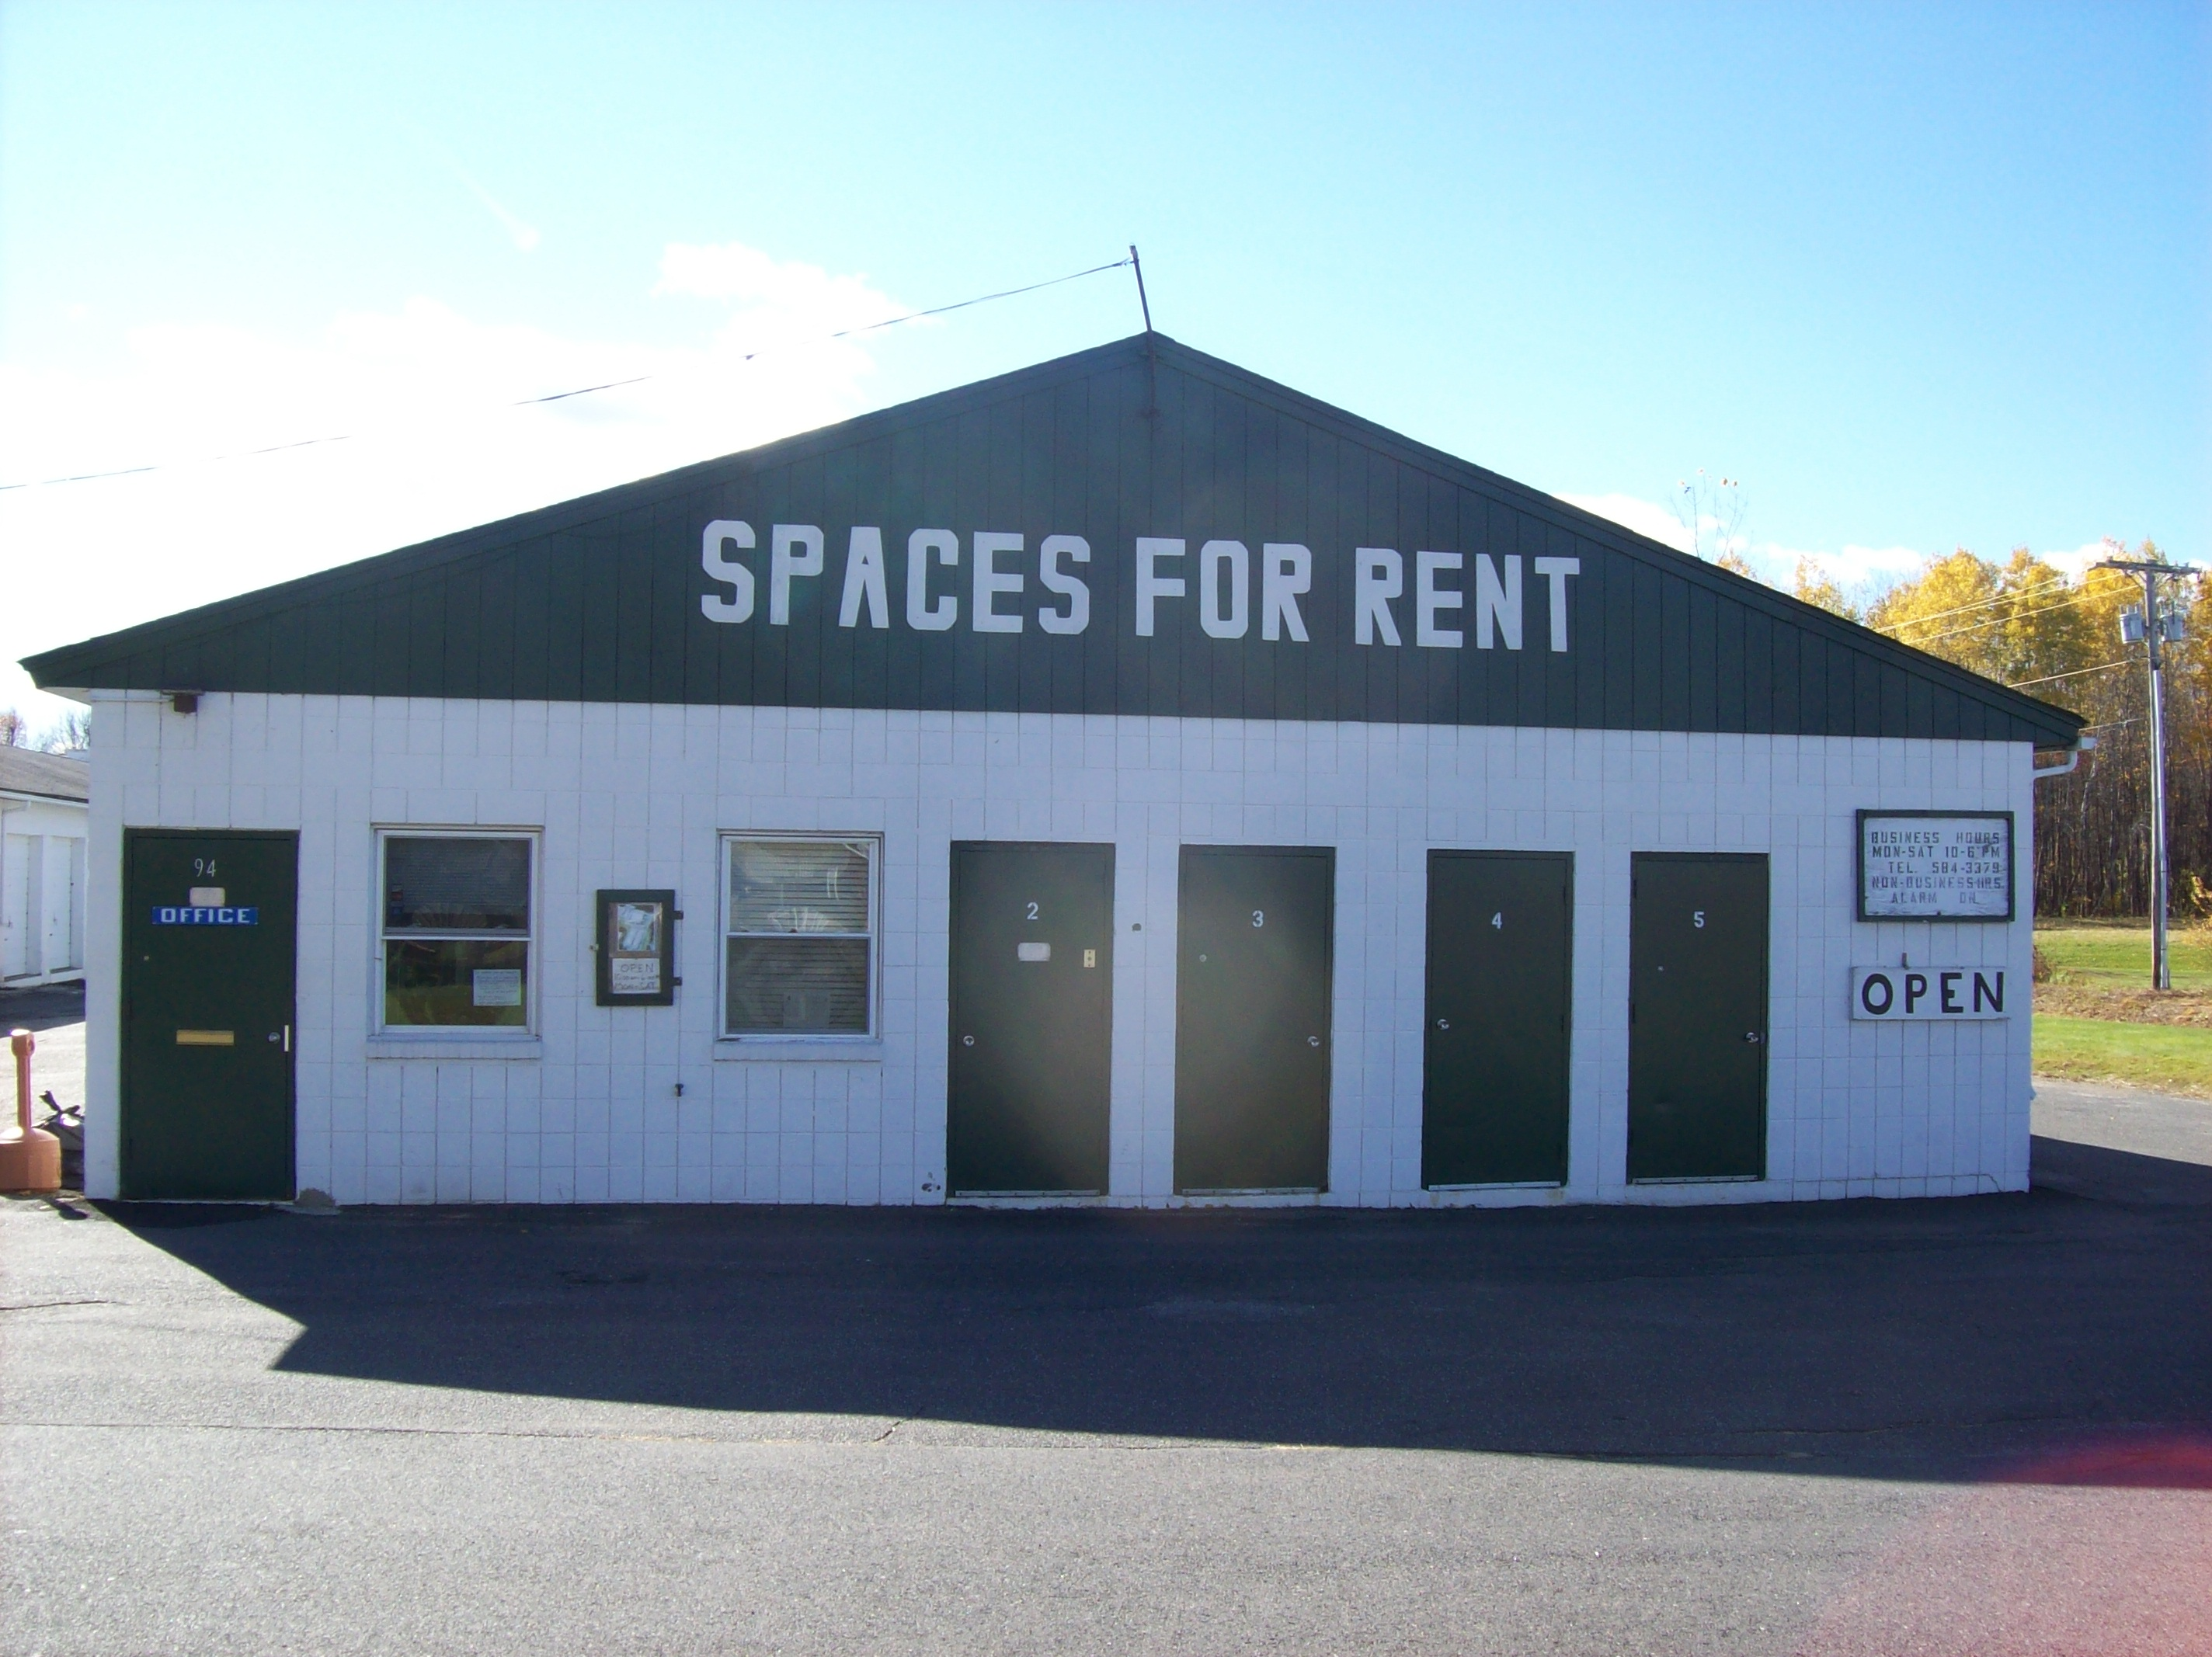 Northampton storage solutions spaces for rent northampton ma company profile - Small storage spaces for rent model ...